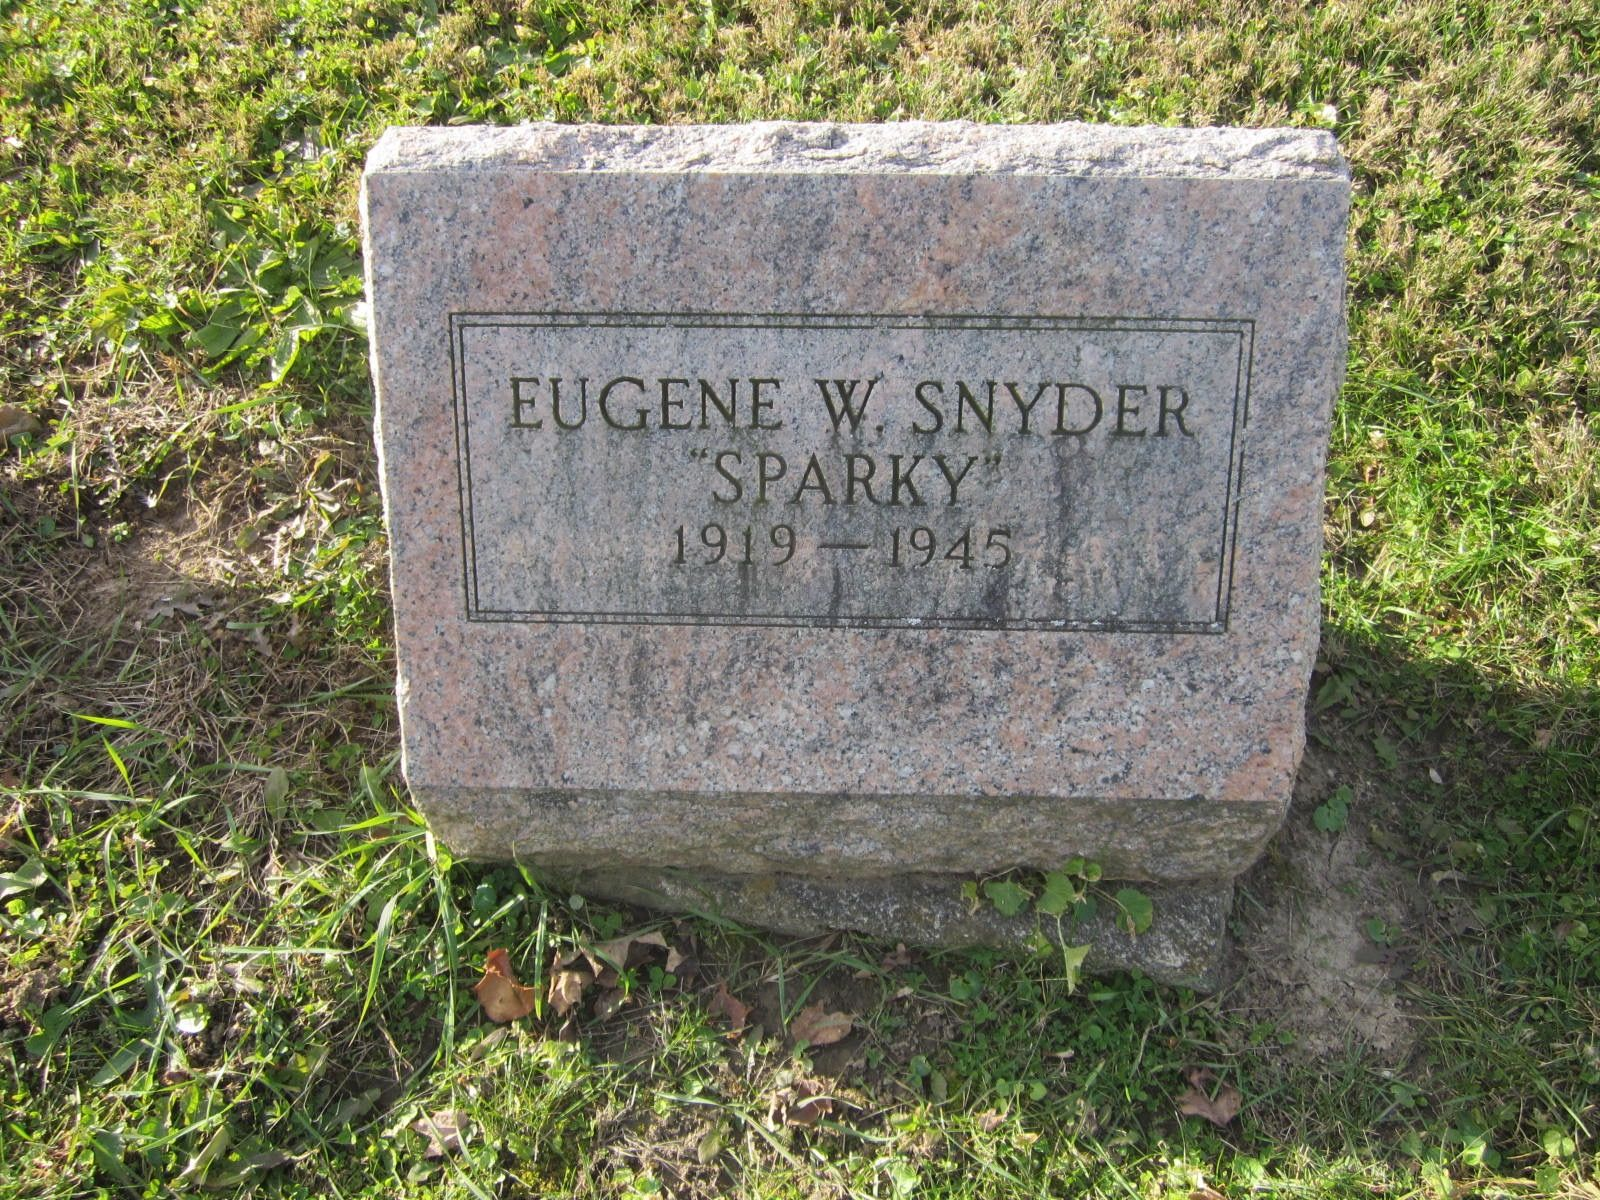 Deputy Sheriff Eugene W. Snyder | Wayne County Sheriff's Office, Indiana